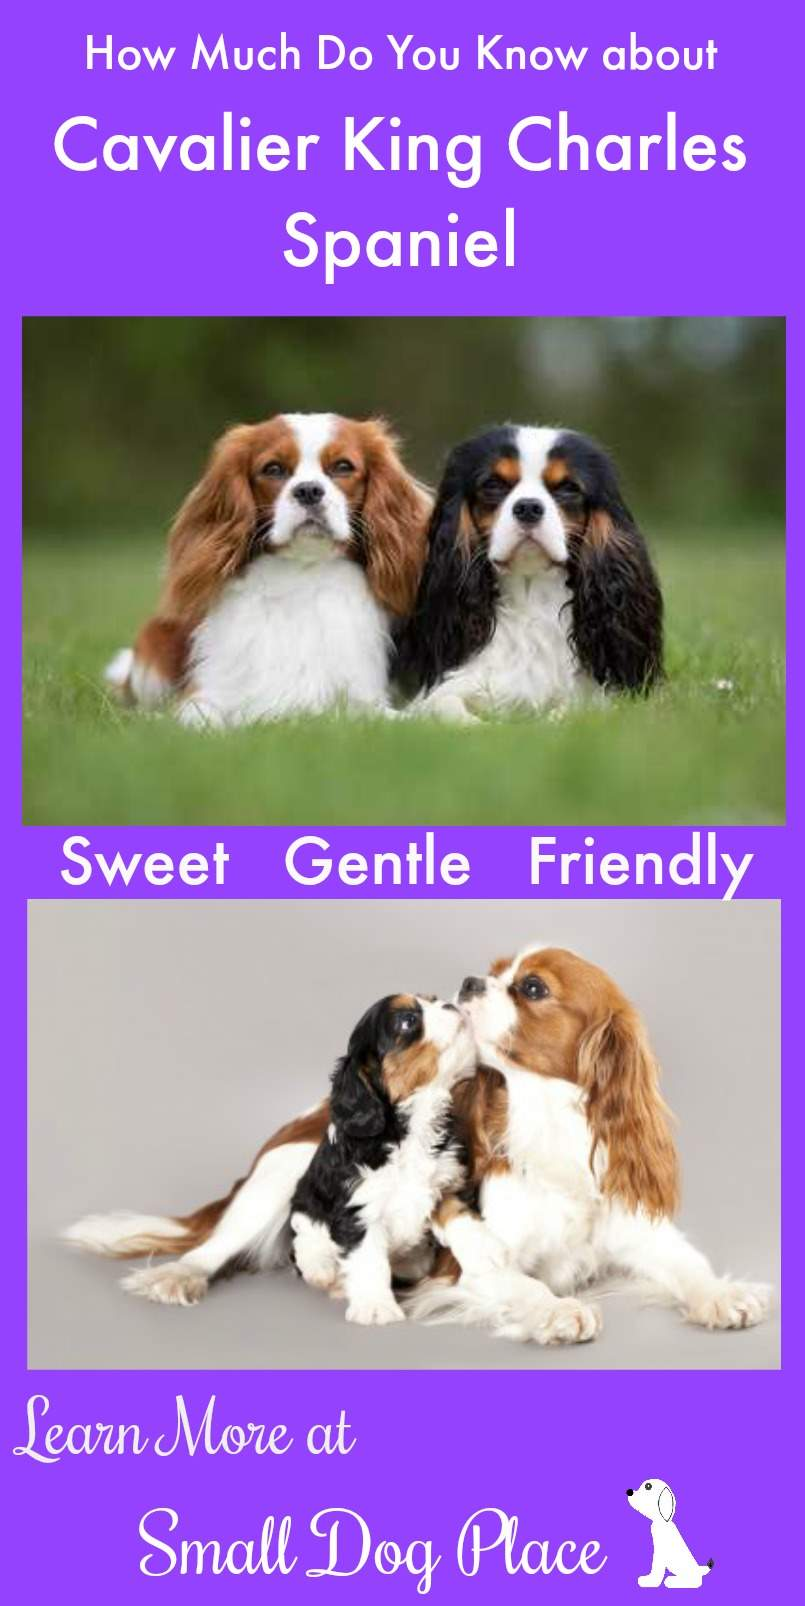 Cavalier King Charles Spaniel Breed Profile